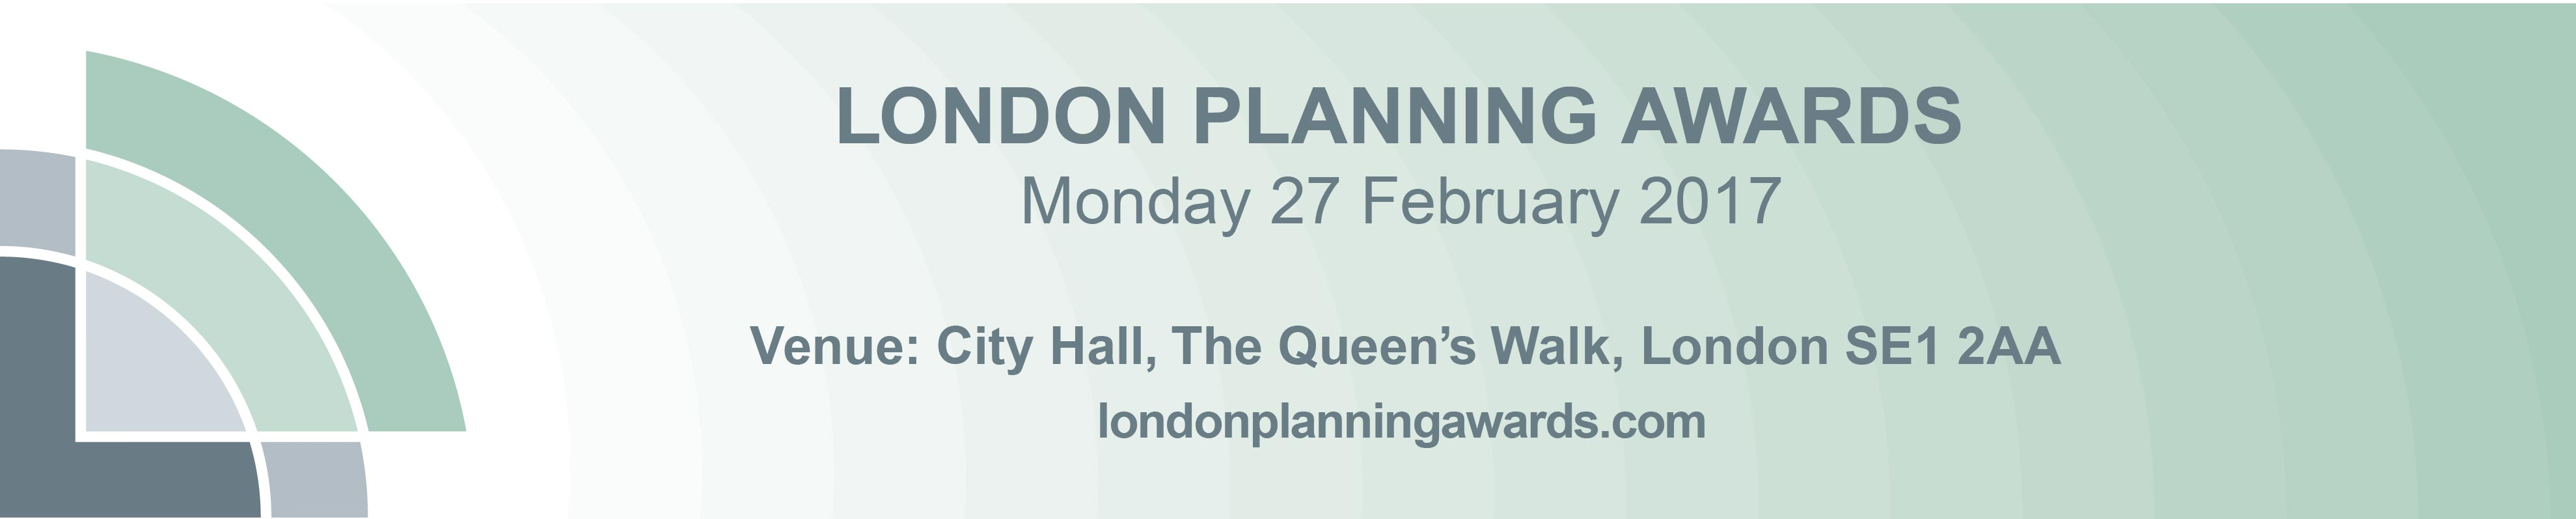 OLD: London Planning Awards website